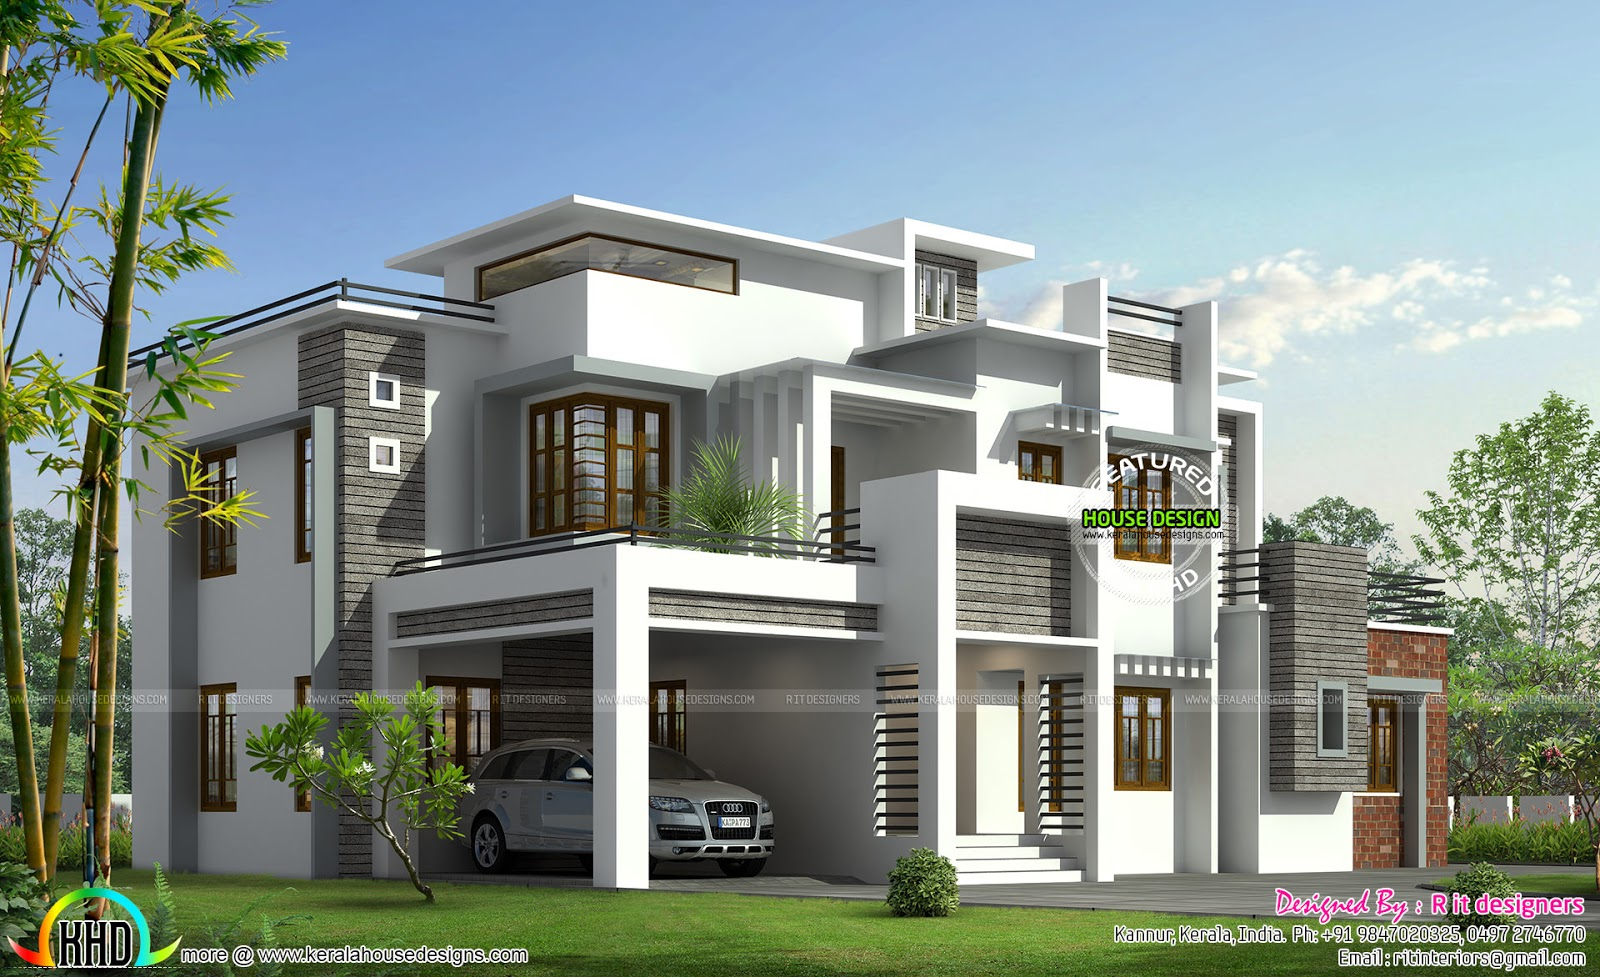 Box model contemporary house kerala home design and for Modern home styles designs